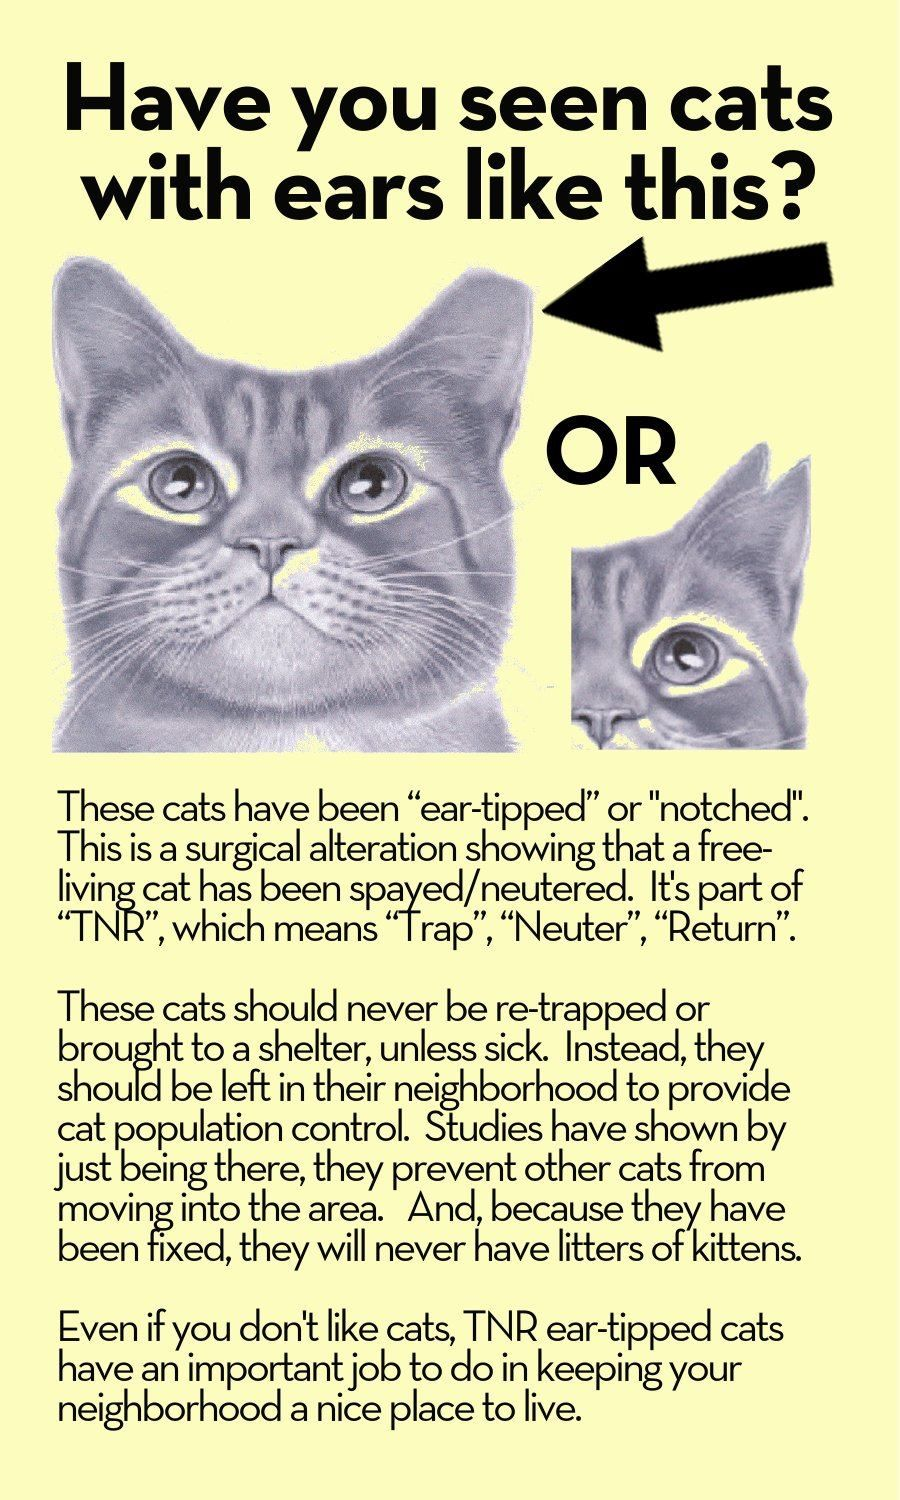 A Cat With A Tipped Ear Has Been Neutered And Given A Rabies Shot Feral Cats Cats Tnr Cats